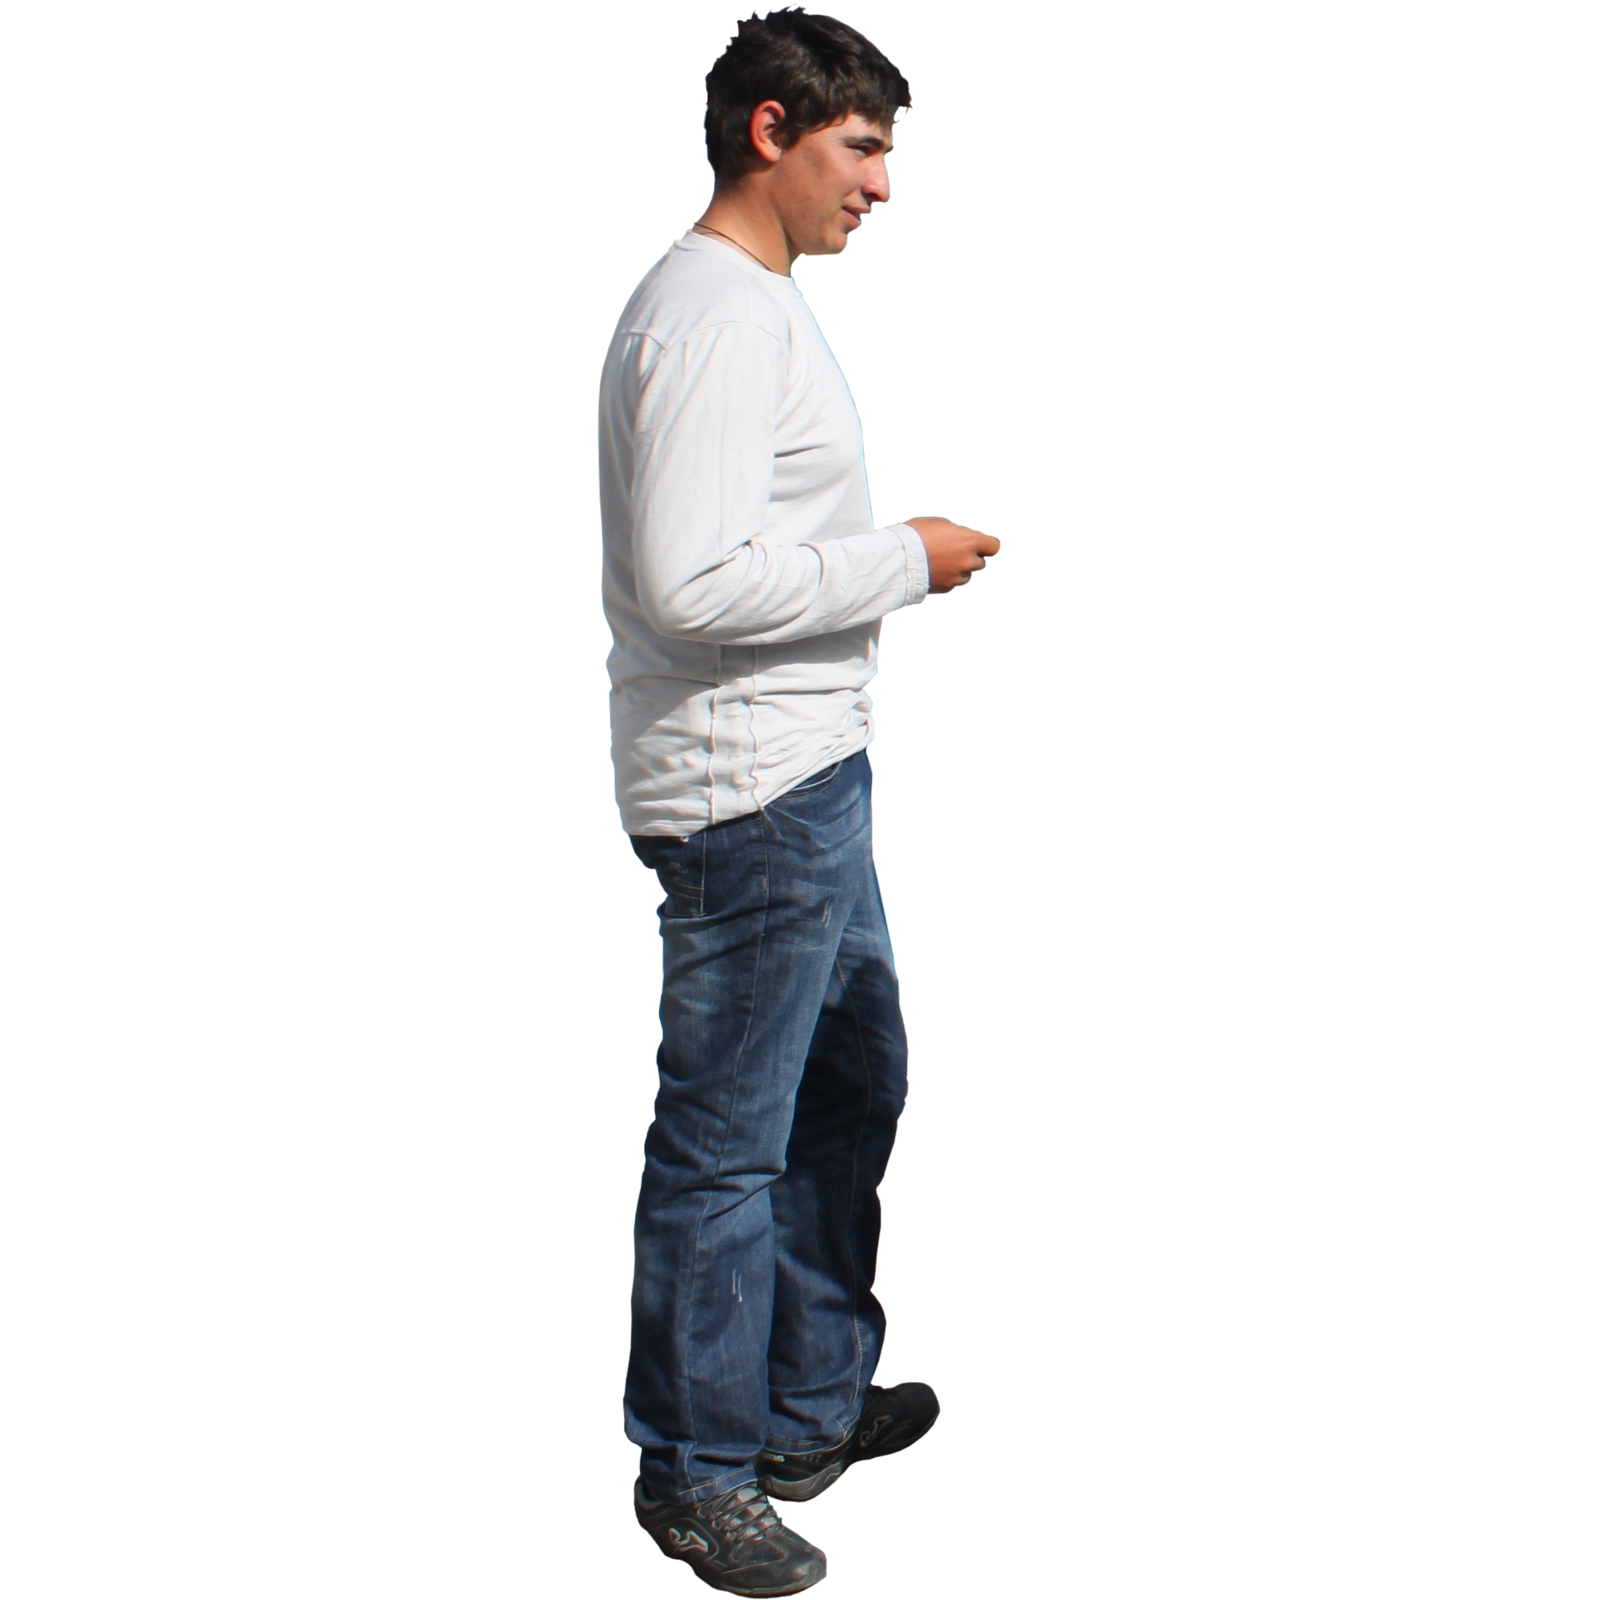 Person standing png. Man by klearchos